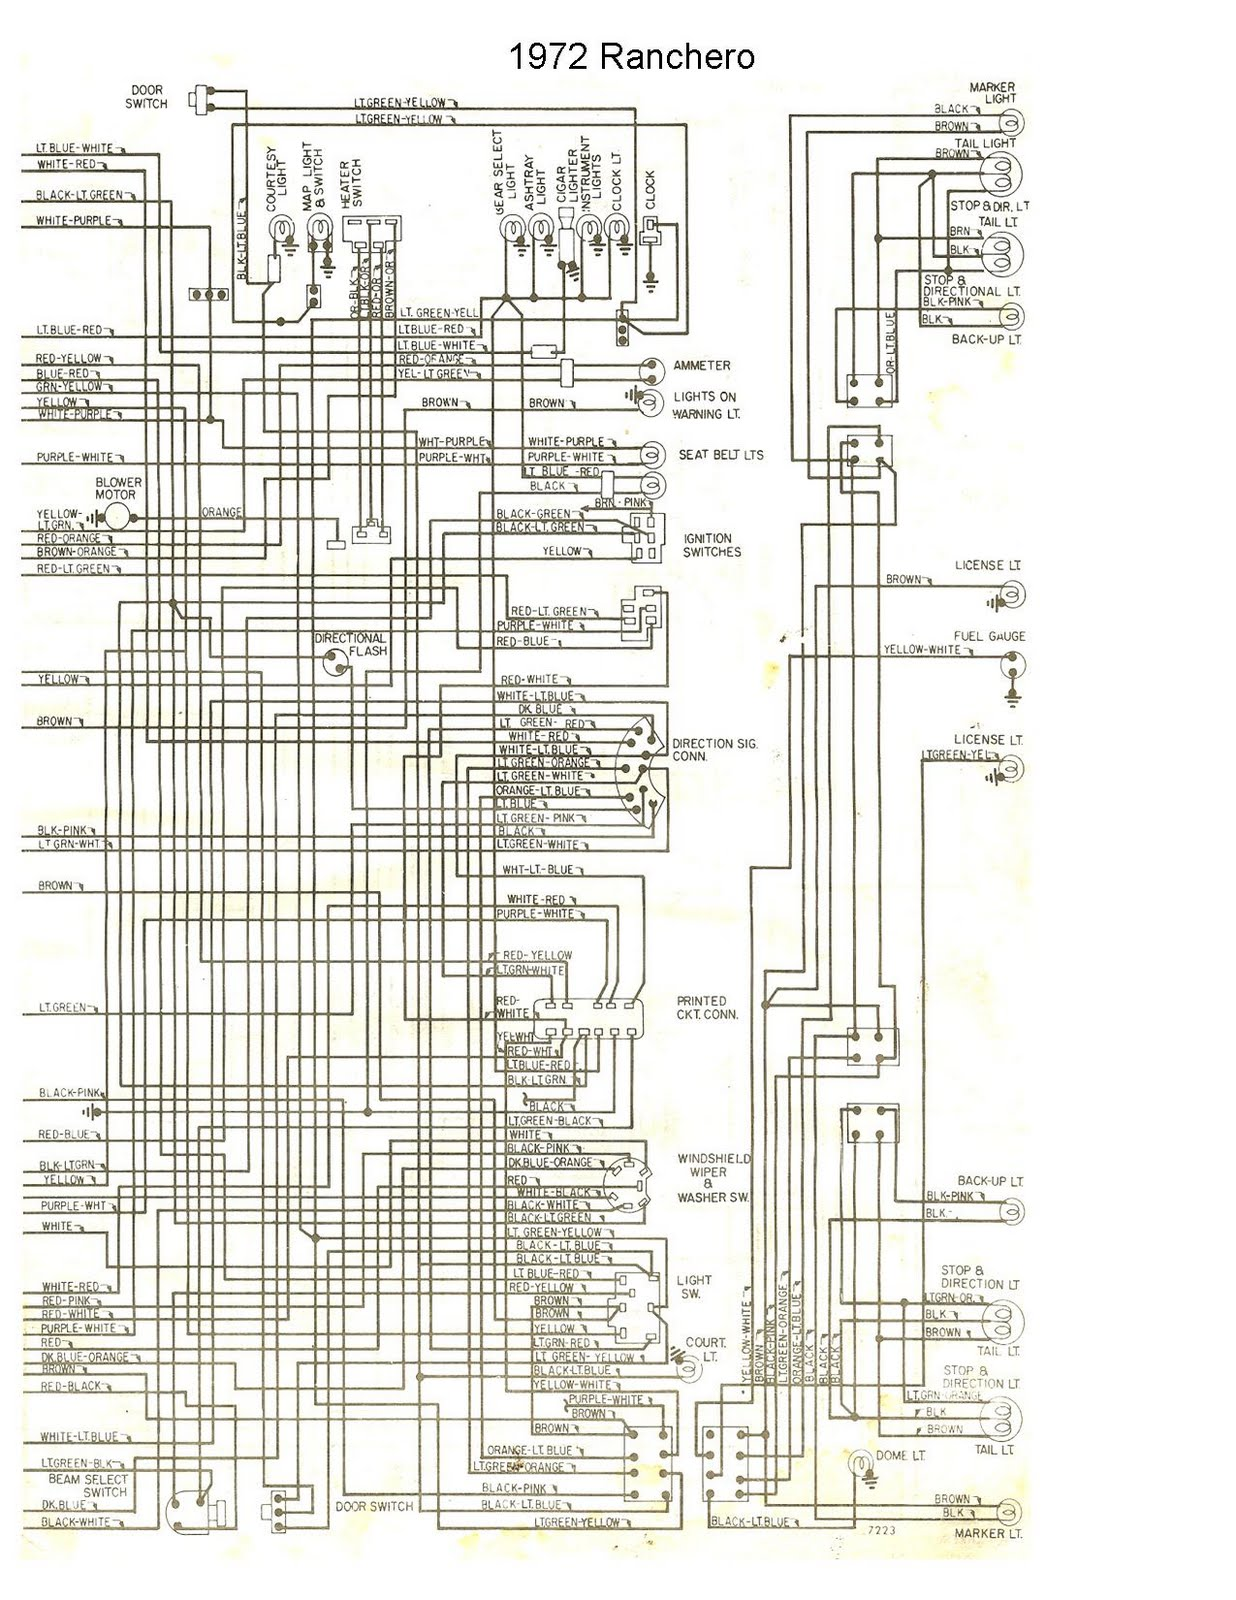 wiring schematic diagram ford ranchero 1972 free auto wiring diagram 1972 ford ranchero wiring diagram 1973 ford truck wiring diagram at aneh.co